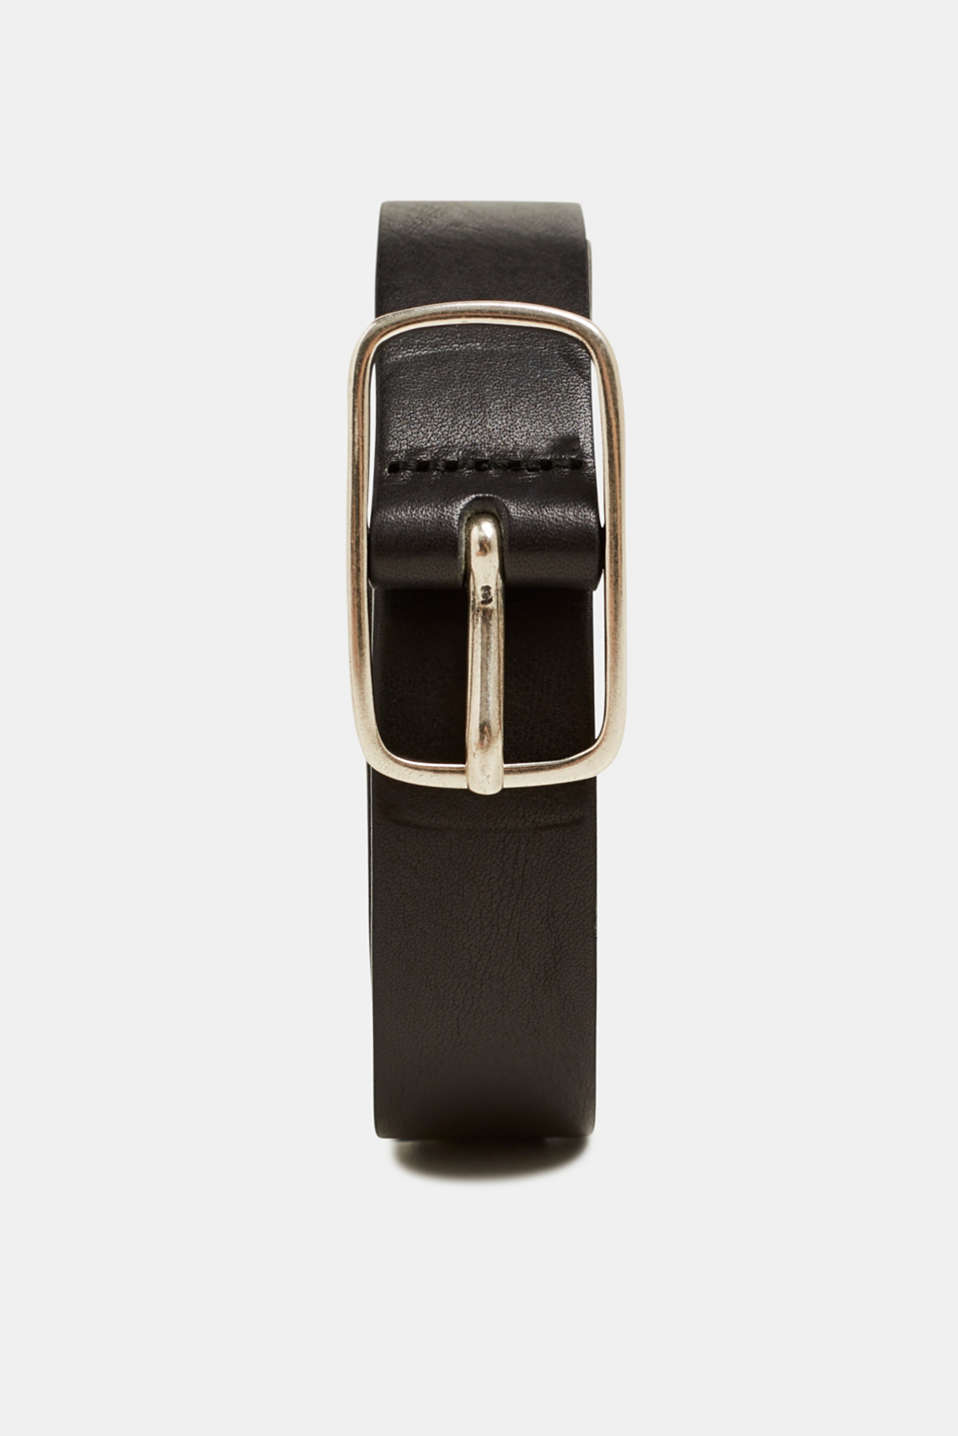 Esprit - Made of leather: Belt in a vintage look